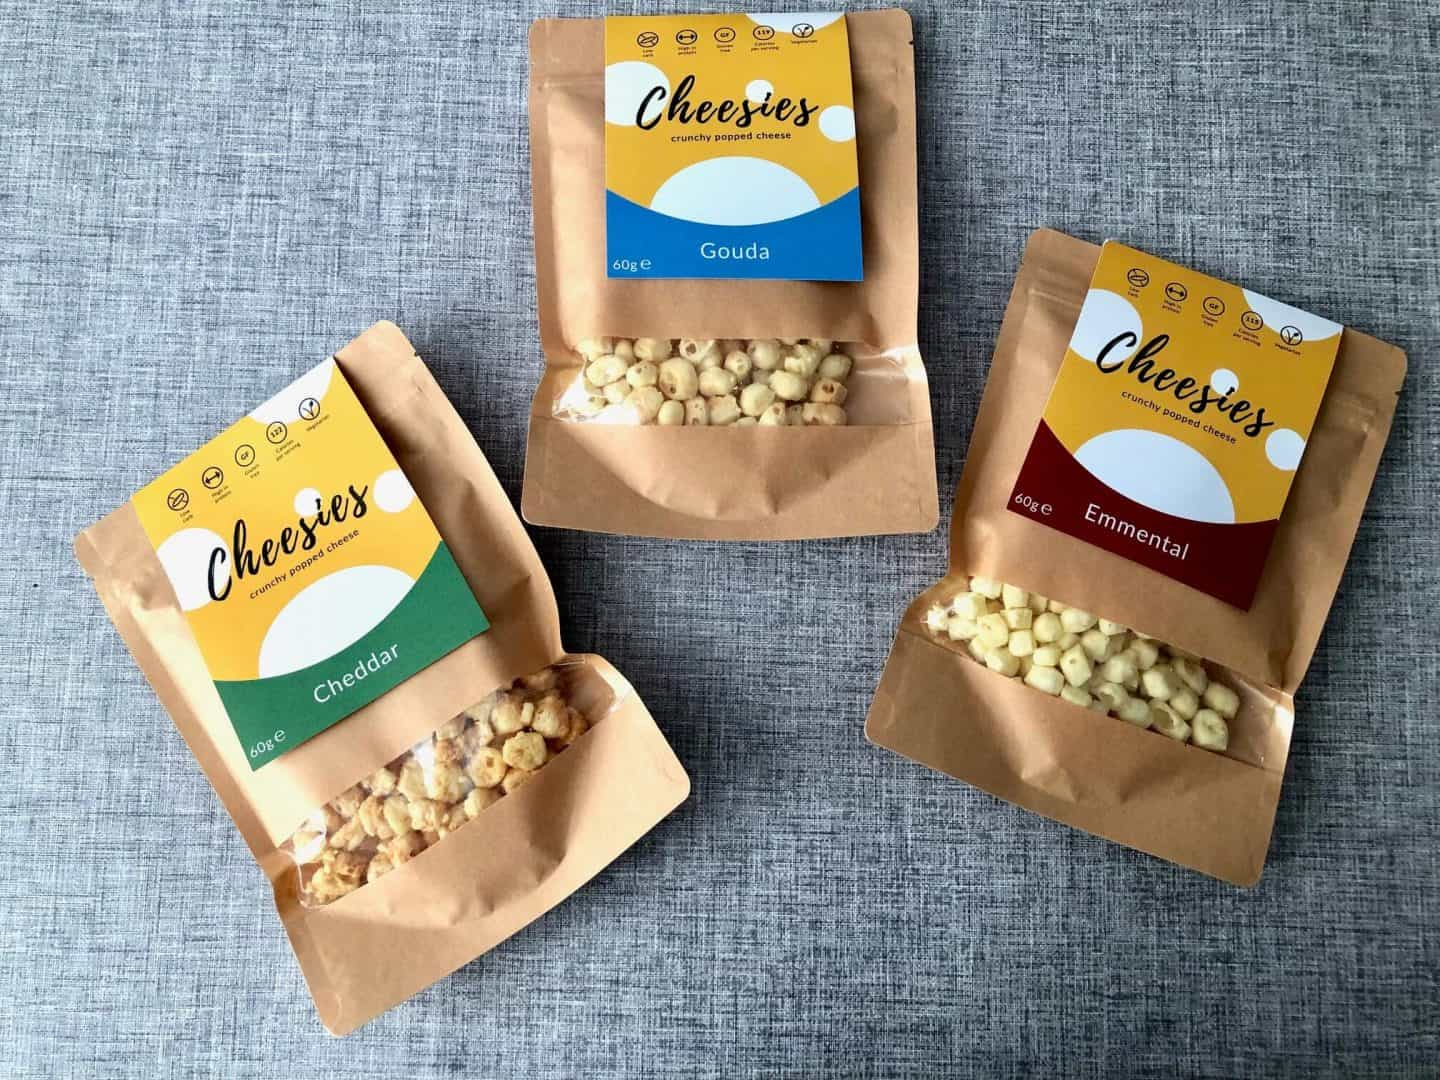 Cheesies Crunchy Popped Cheese Snack Review and Giveaway